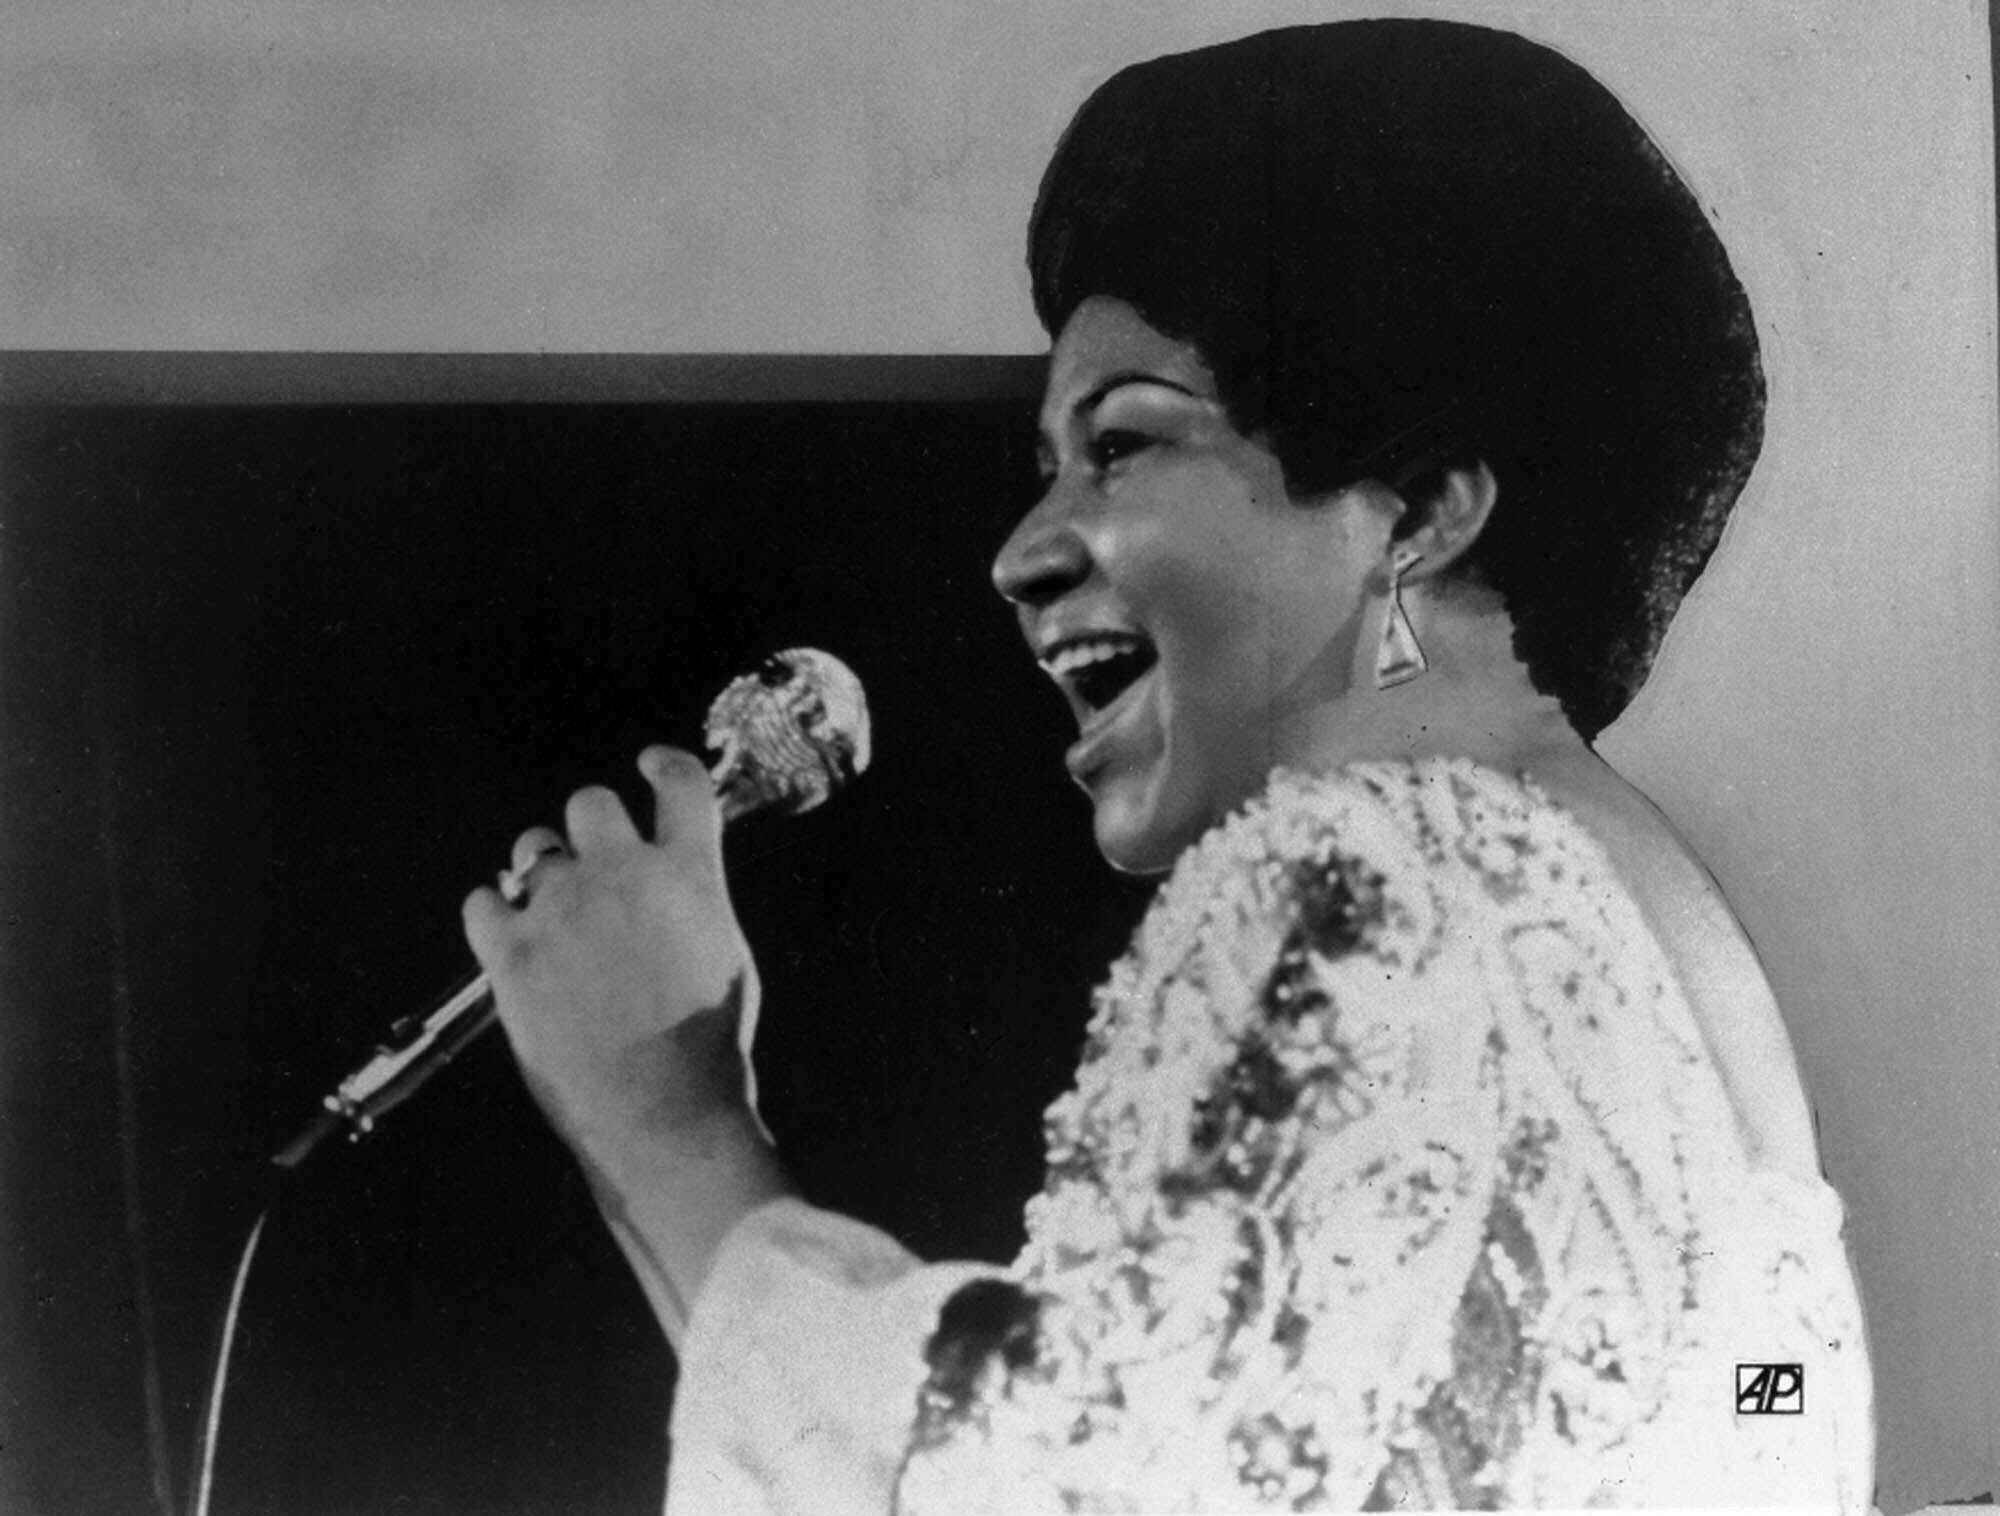 Vocalist Aretha Franklin warbles a few notes into microphone in Jan. 28, 1972 photo. (AP Photo)/NY924/AP_720128037/1508061613